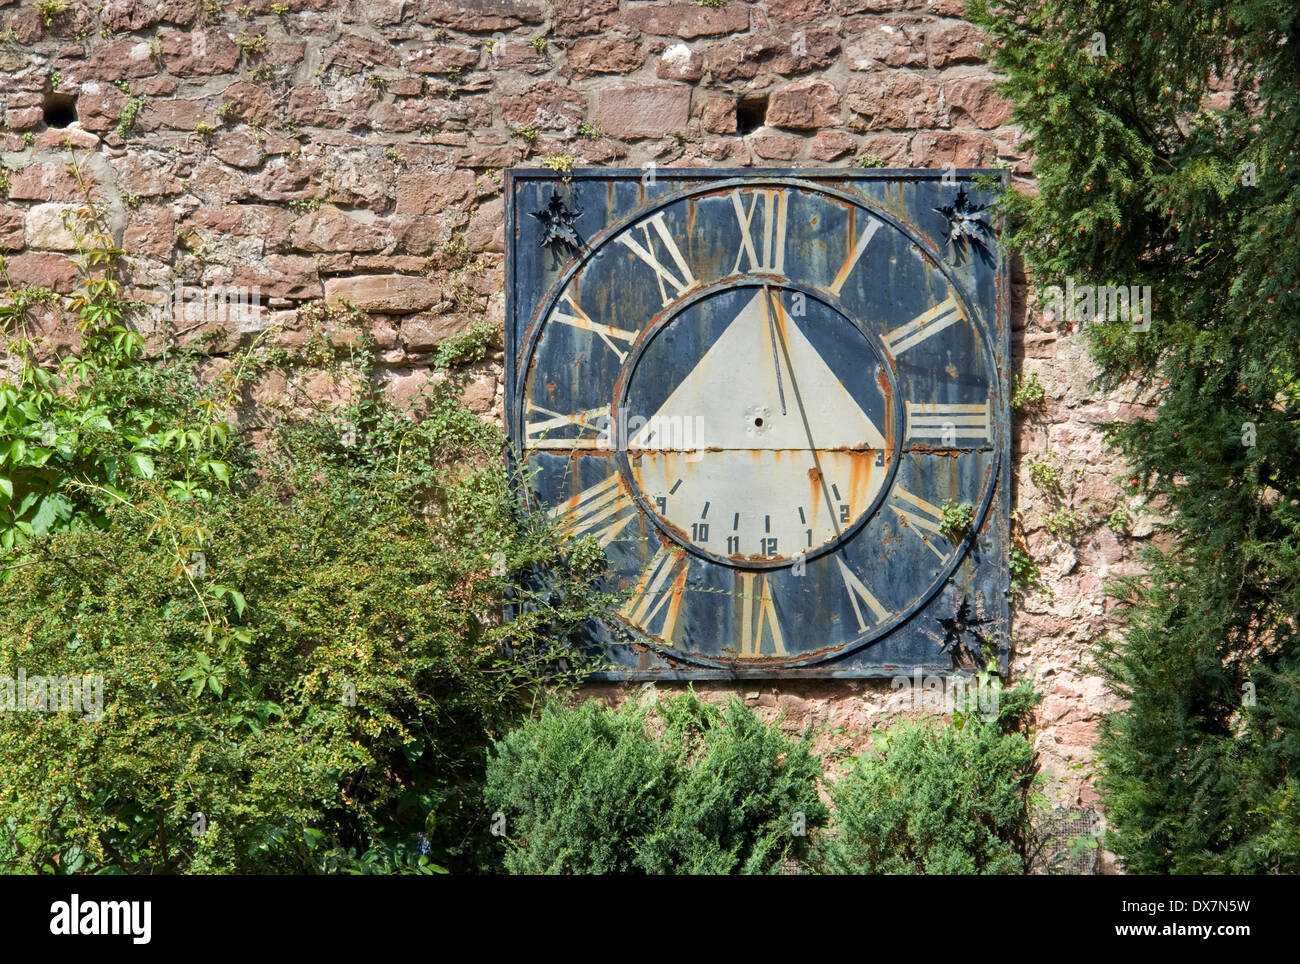 sunny scenery including a old weathered sundial in Southern Germany - Stock Image